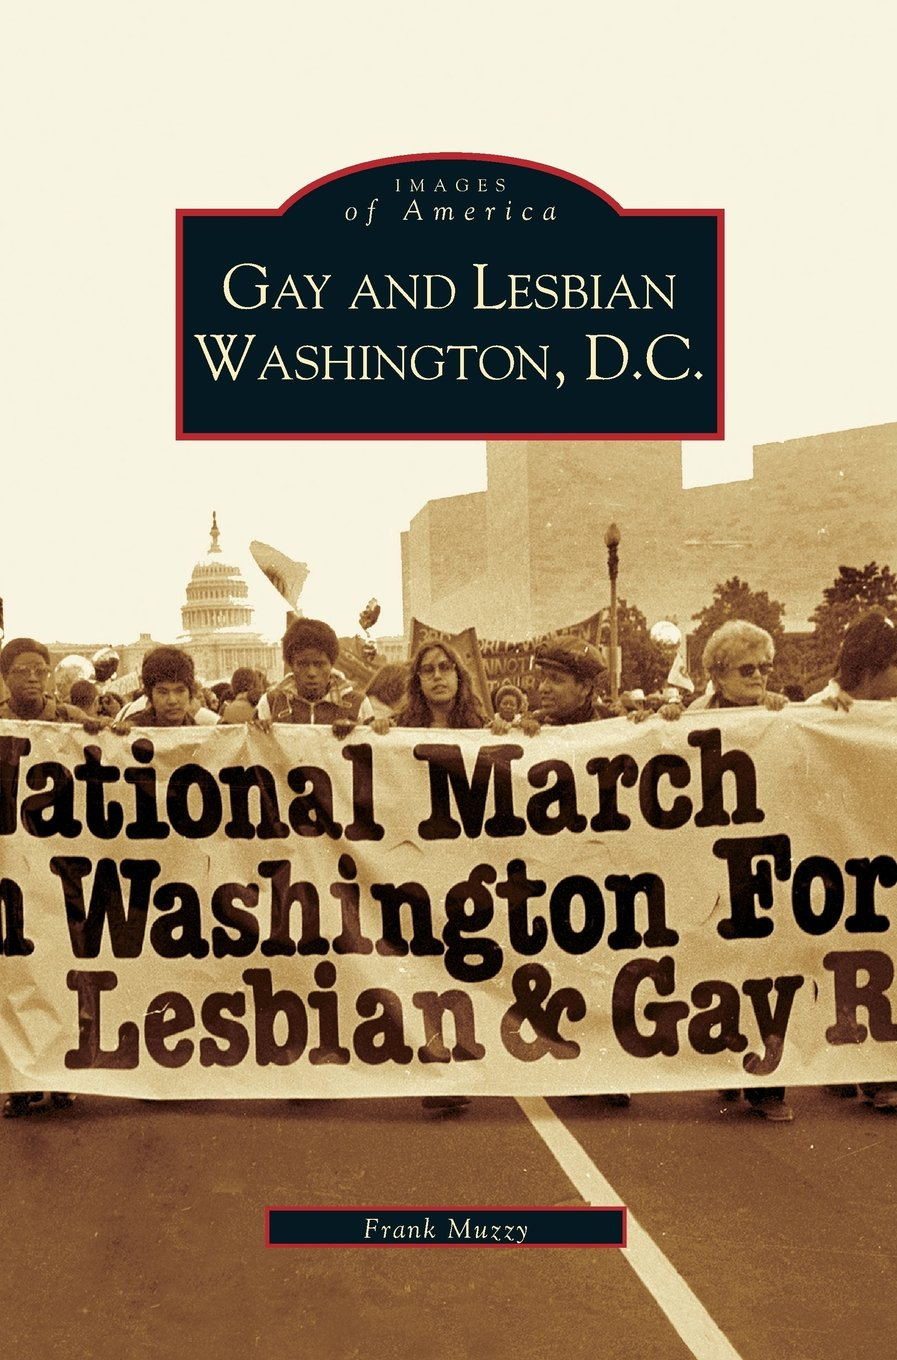 Gay and Lesbian Washington D.C. ebook